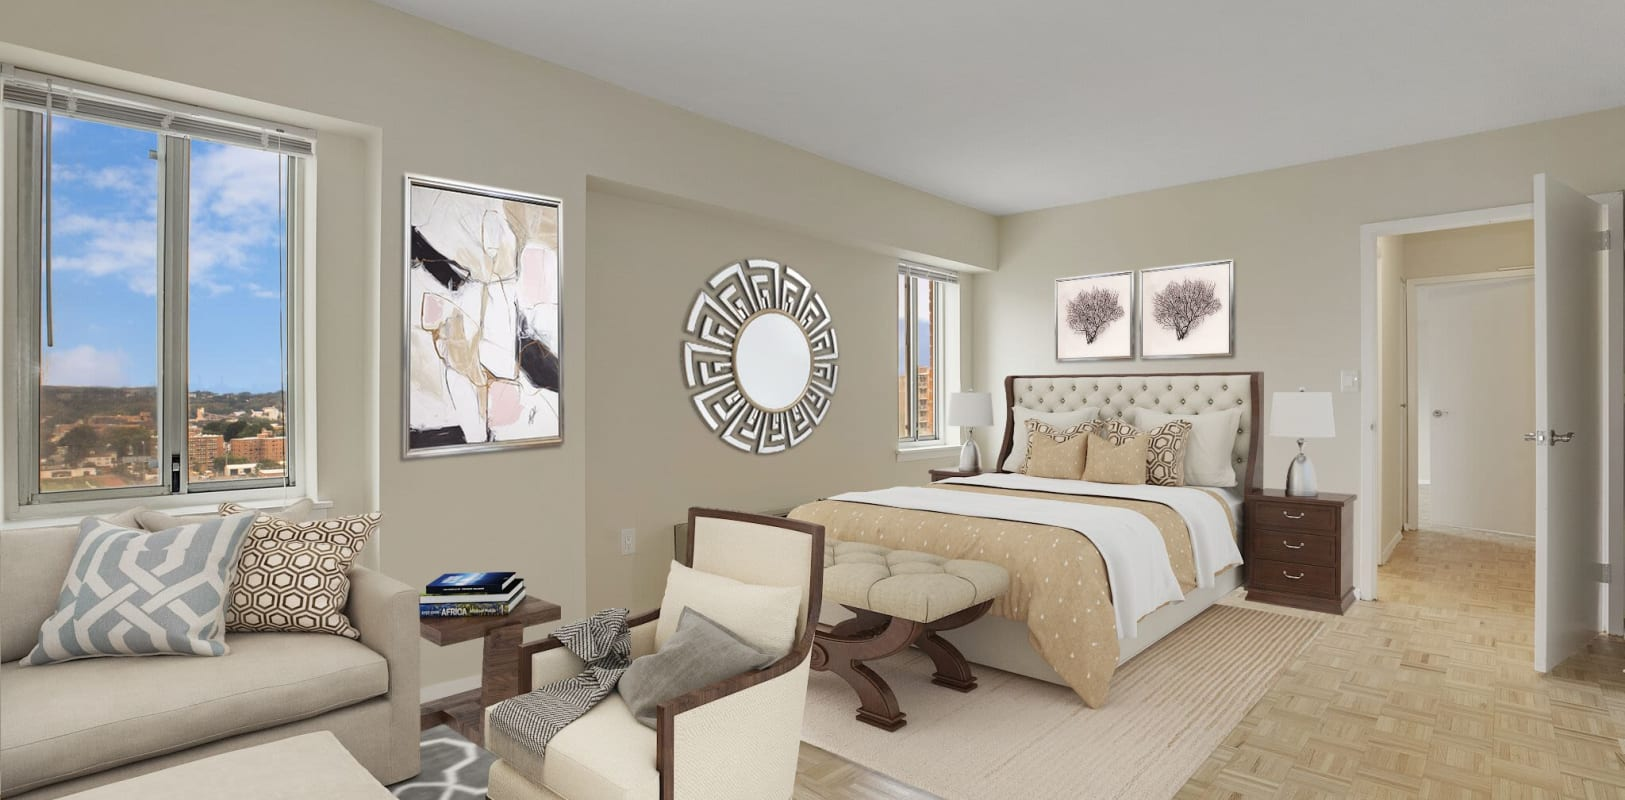 Bright, spacious bedroom at 140 Prospect in Hackensack, New Jersey